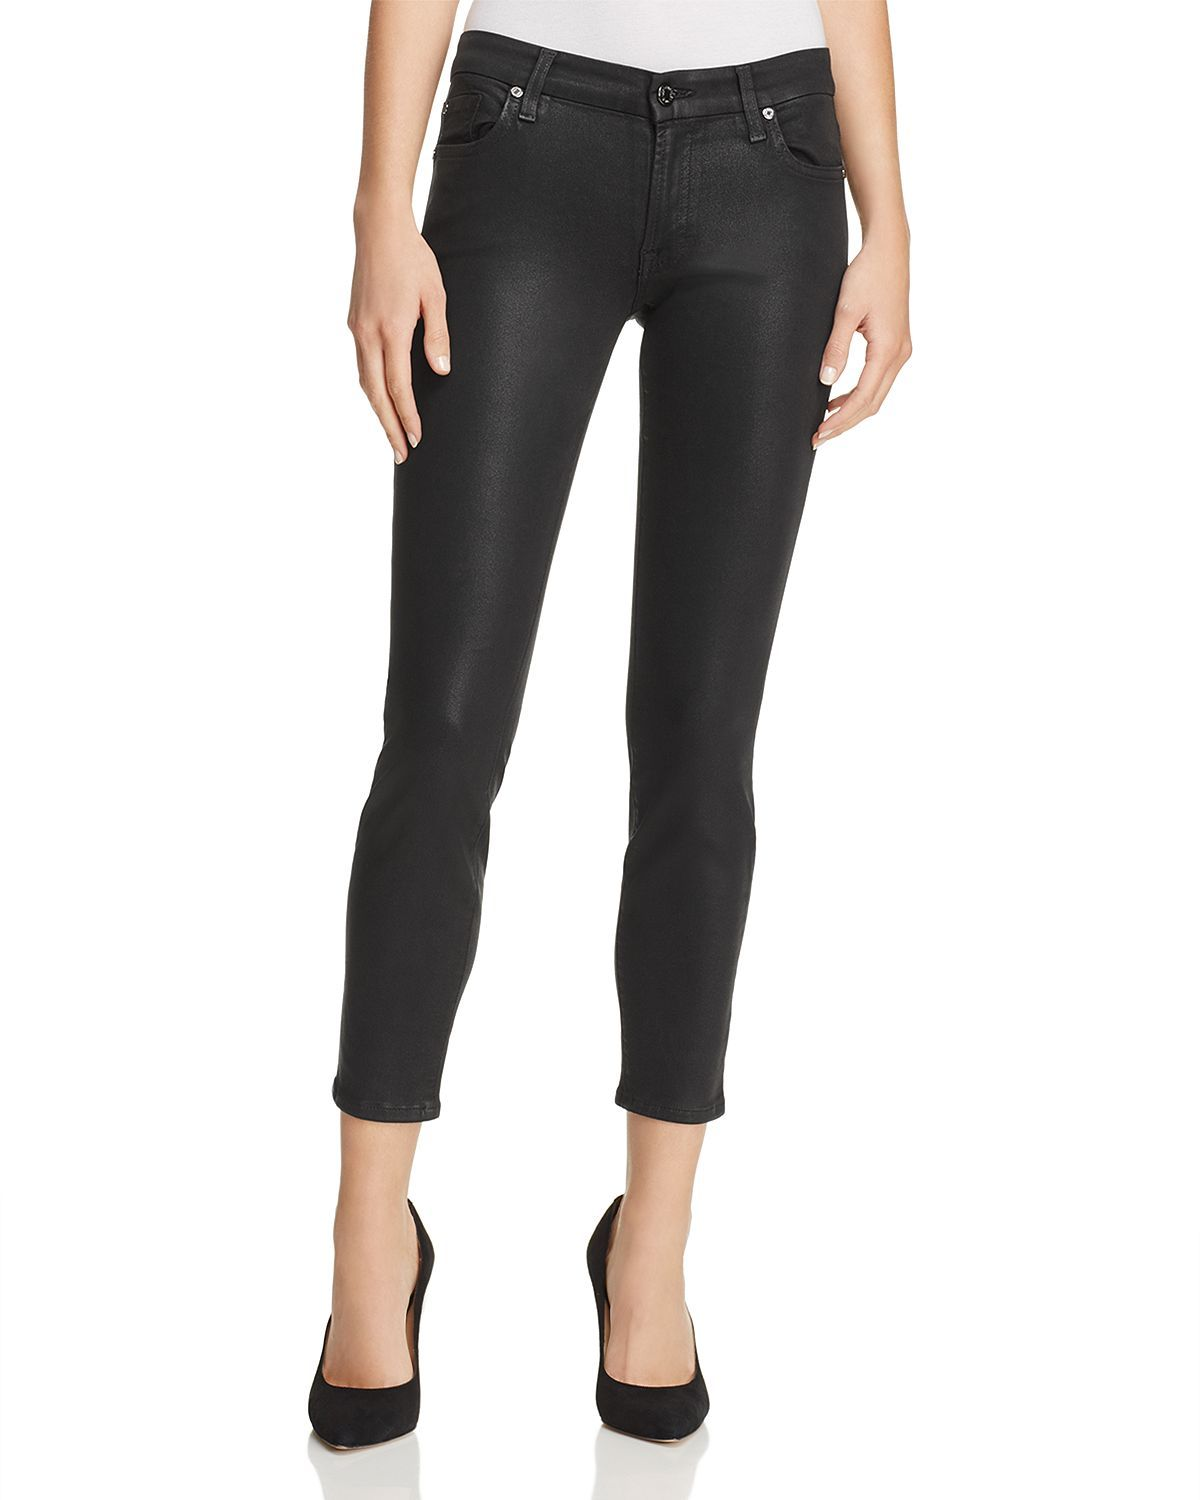 753b6cf3daf8b Coated Ankle Skinny Jeans in Black Clean | Courtney Shopping List ...